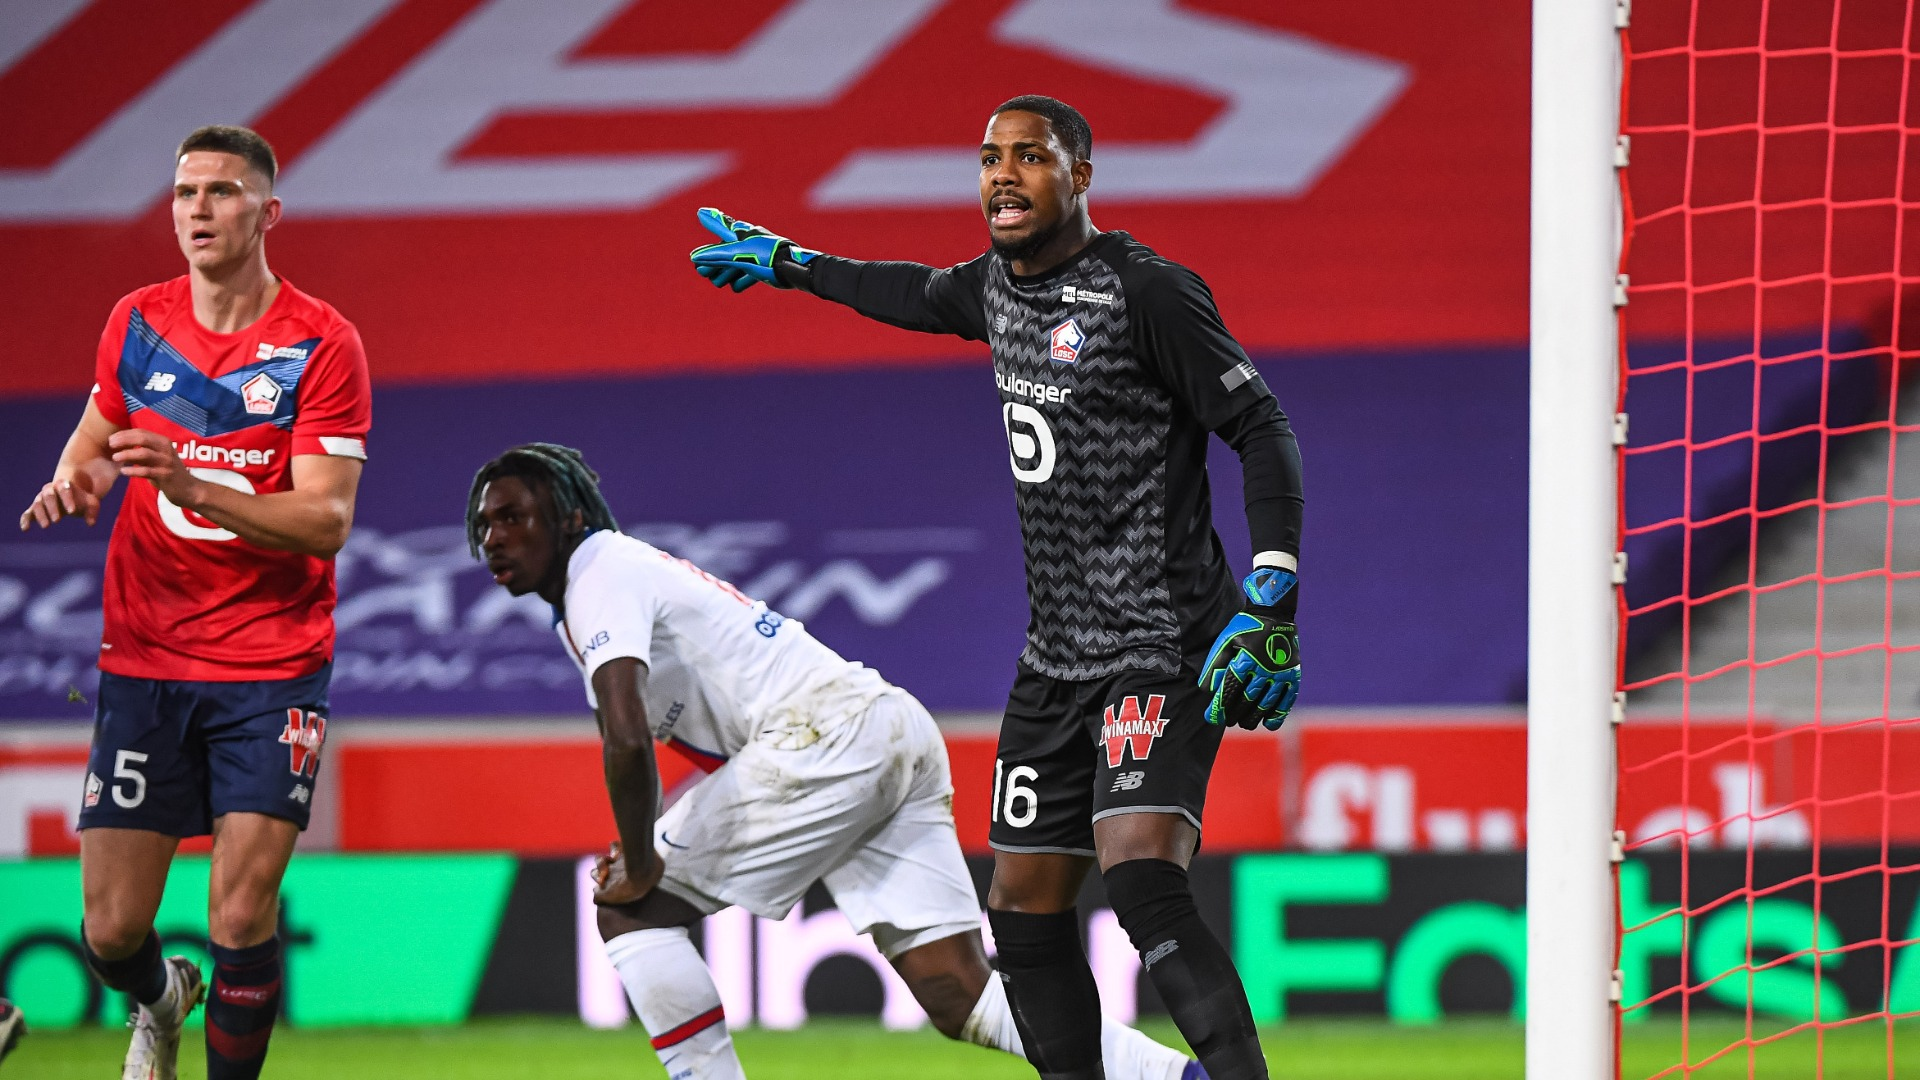 Lille need one more victory to seal their first Ligue 1 title in 10 years